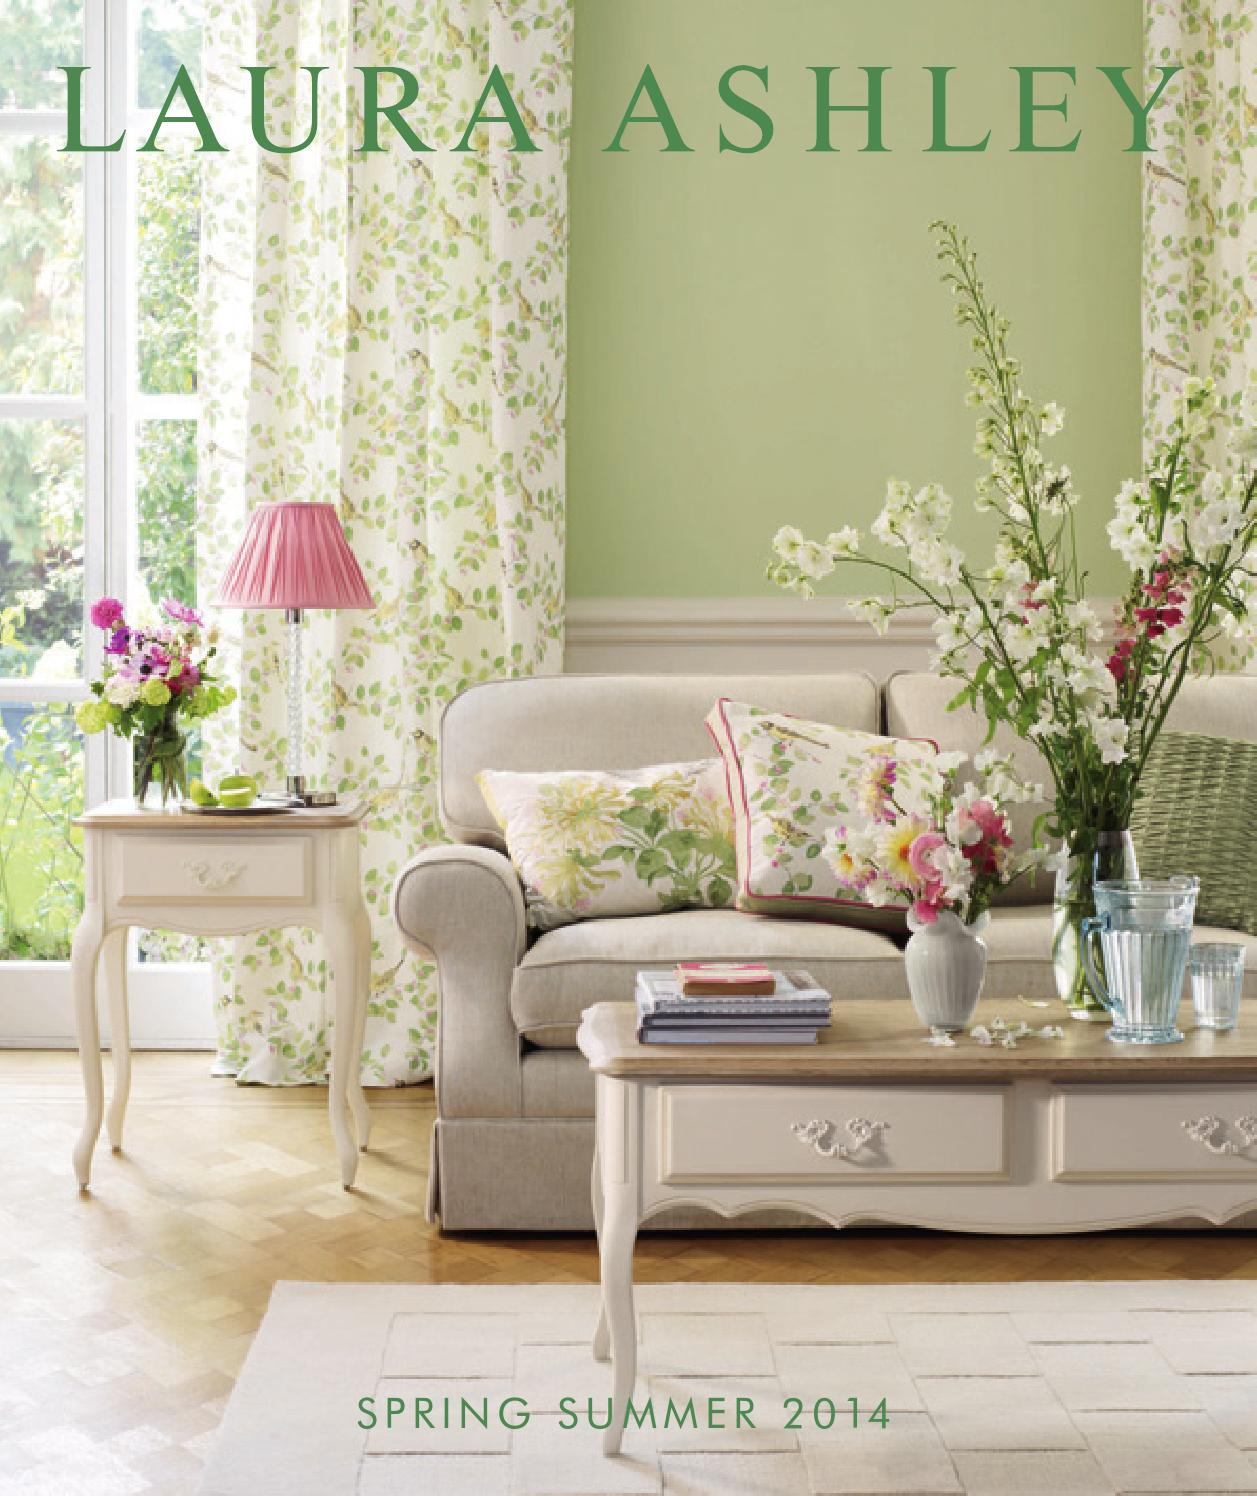 Laura ashley katalog spring summer 2014 by laura ashley sweden issuu gumiabroncs Image collections